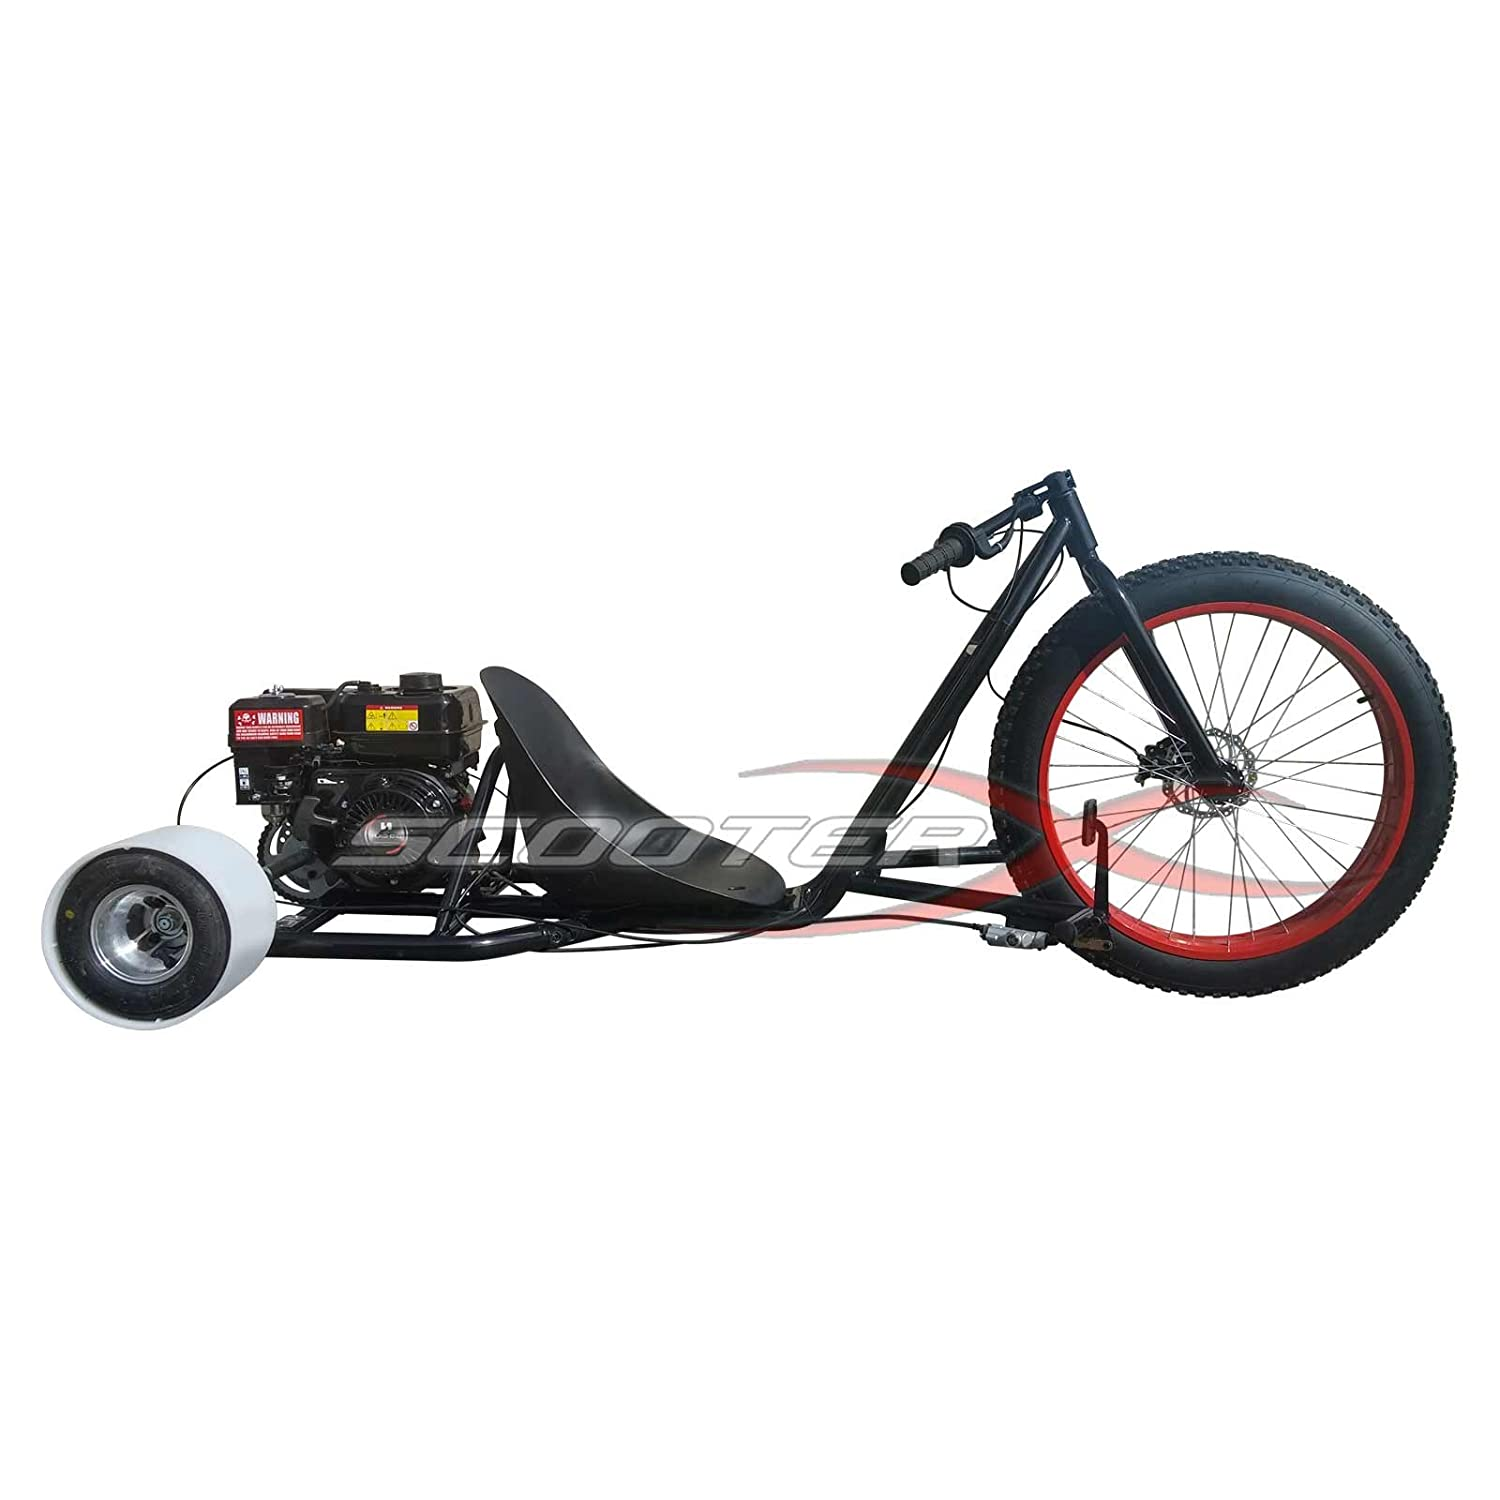 Amazon.com: ScooterX Drifter 6,5 HP 196 cc, Go Kart Drift ...